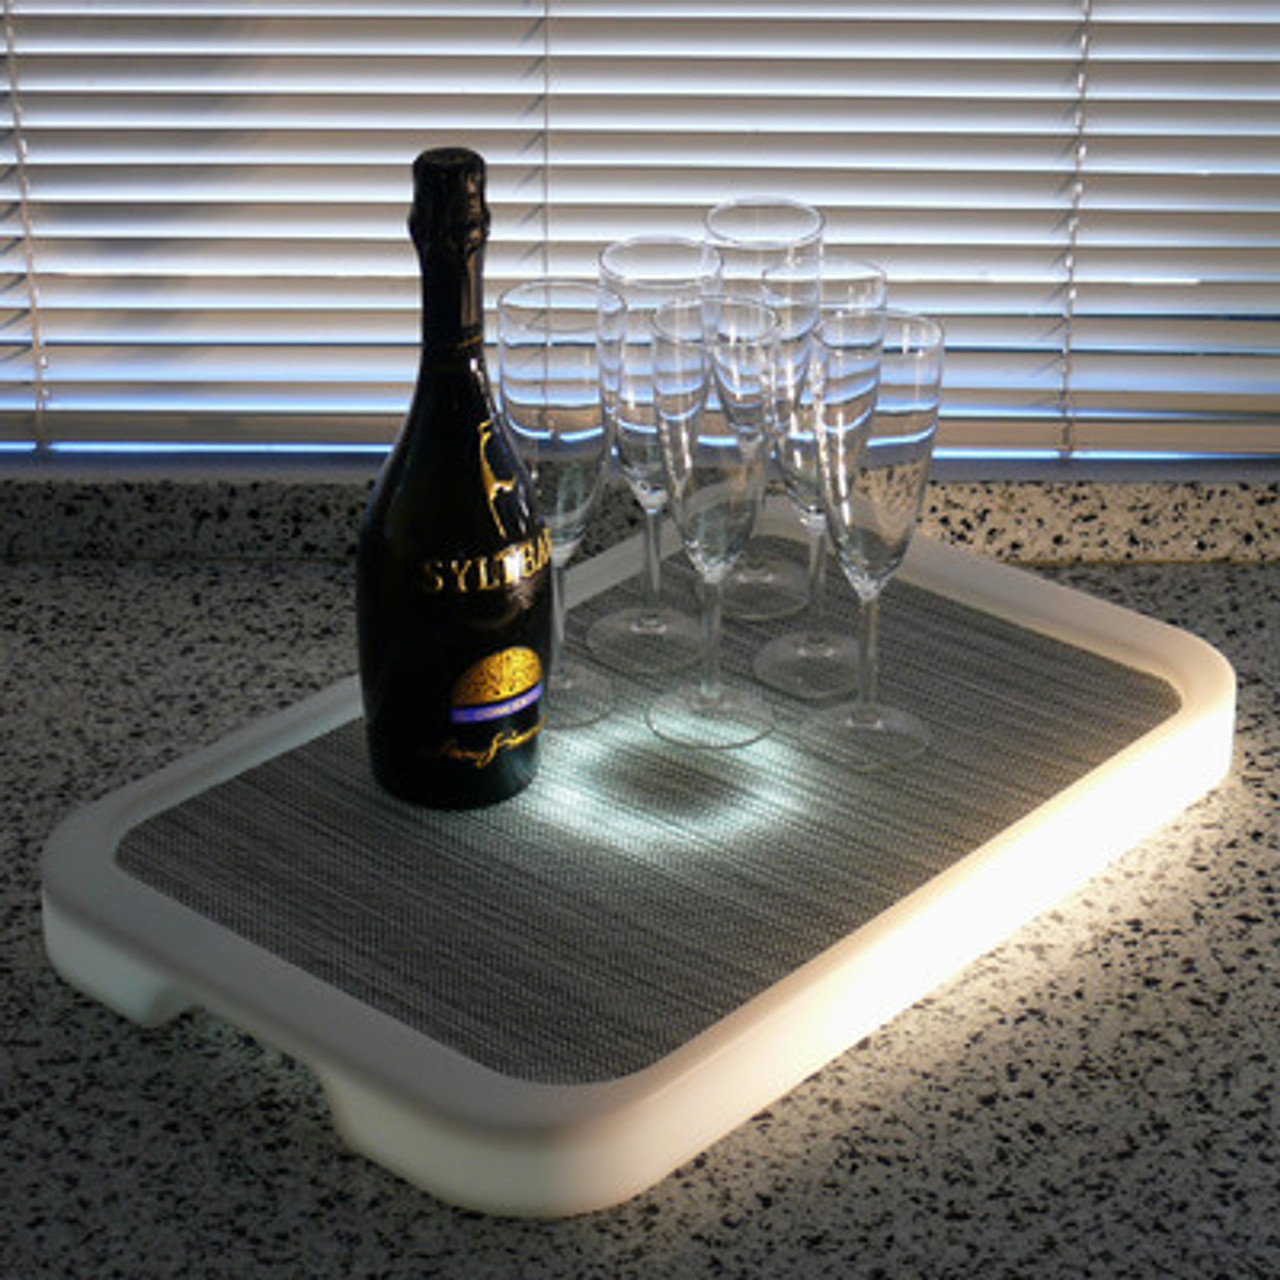 LED, LED Tray, Light up Tray, Serving, Service, Tray,Waterproof, unbreakable, wine,champagne